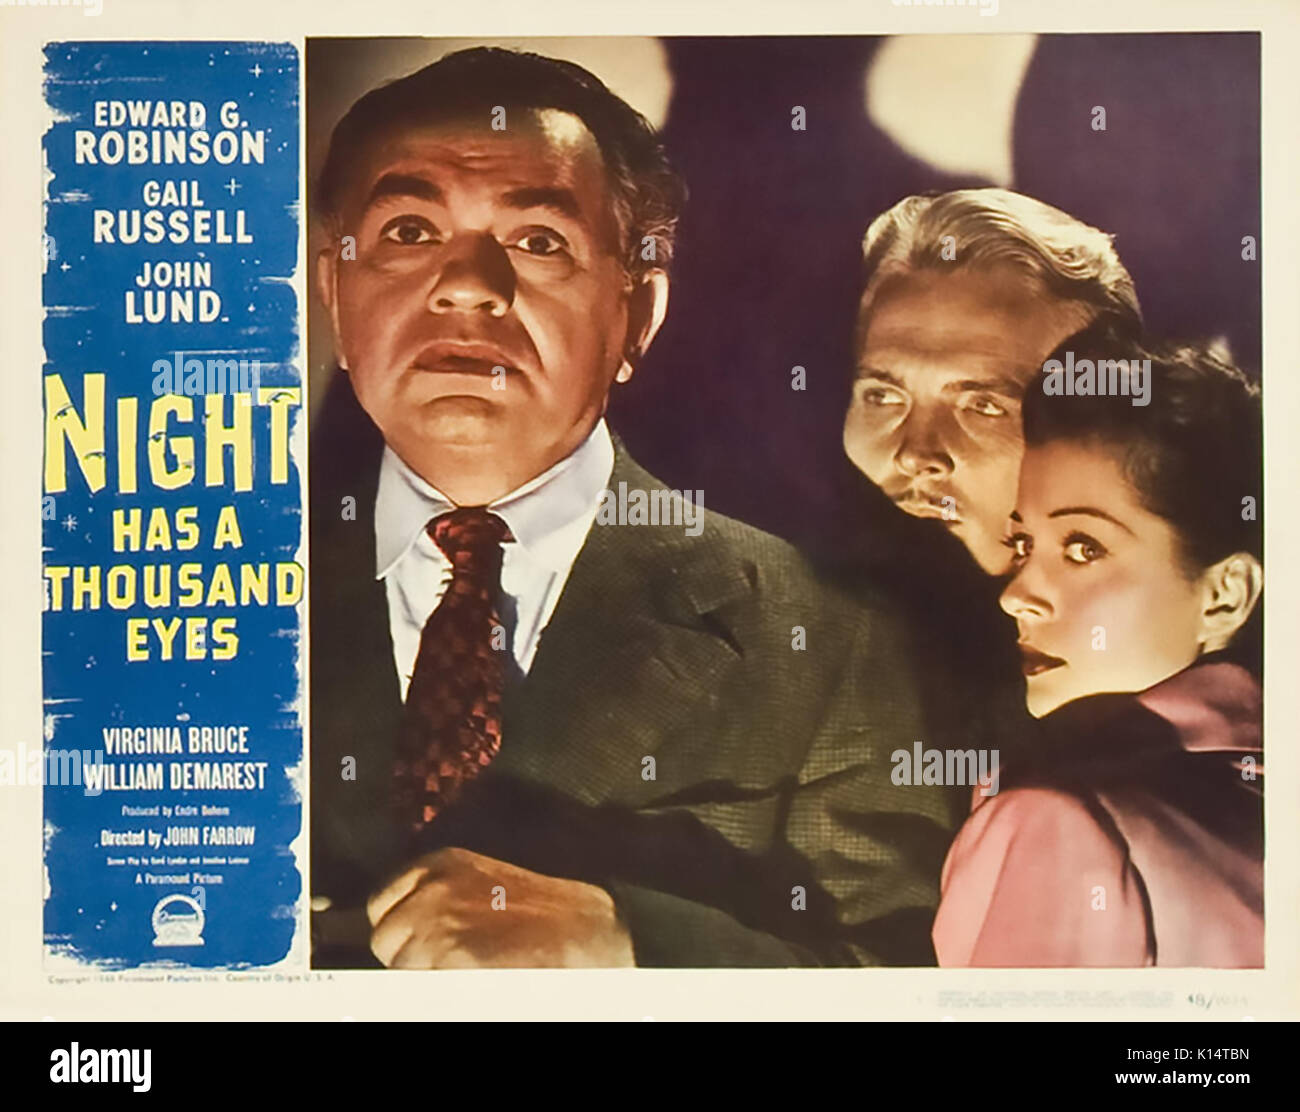 NIGHT HAS A THOUSAND EYES 1948 Paramount Pictures film noir with from left: Edward G. Robinson, John Lund, Gail Russell - Stock Image